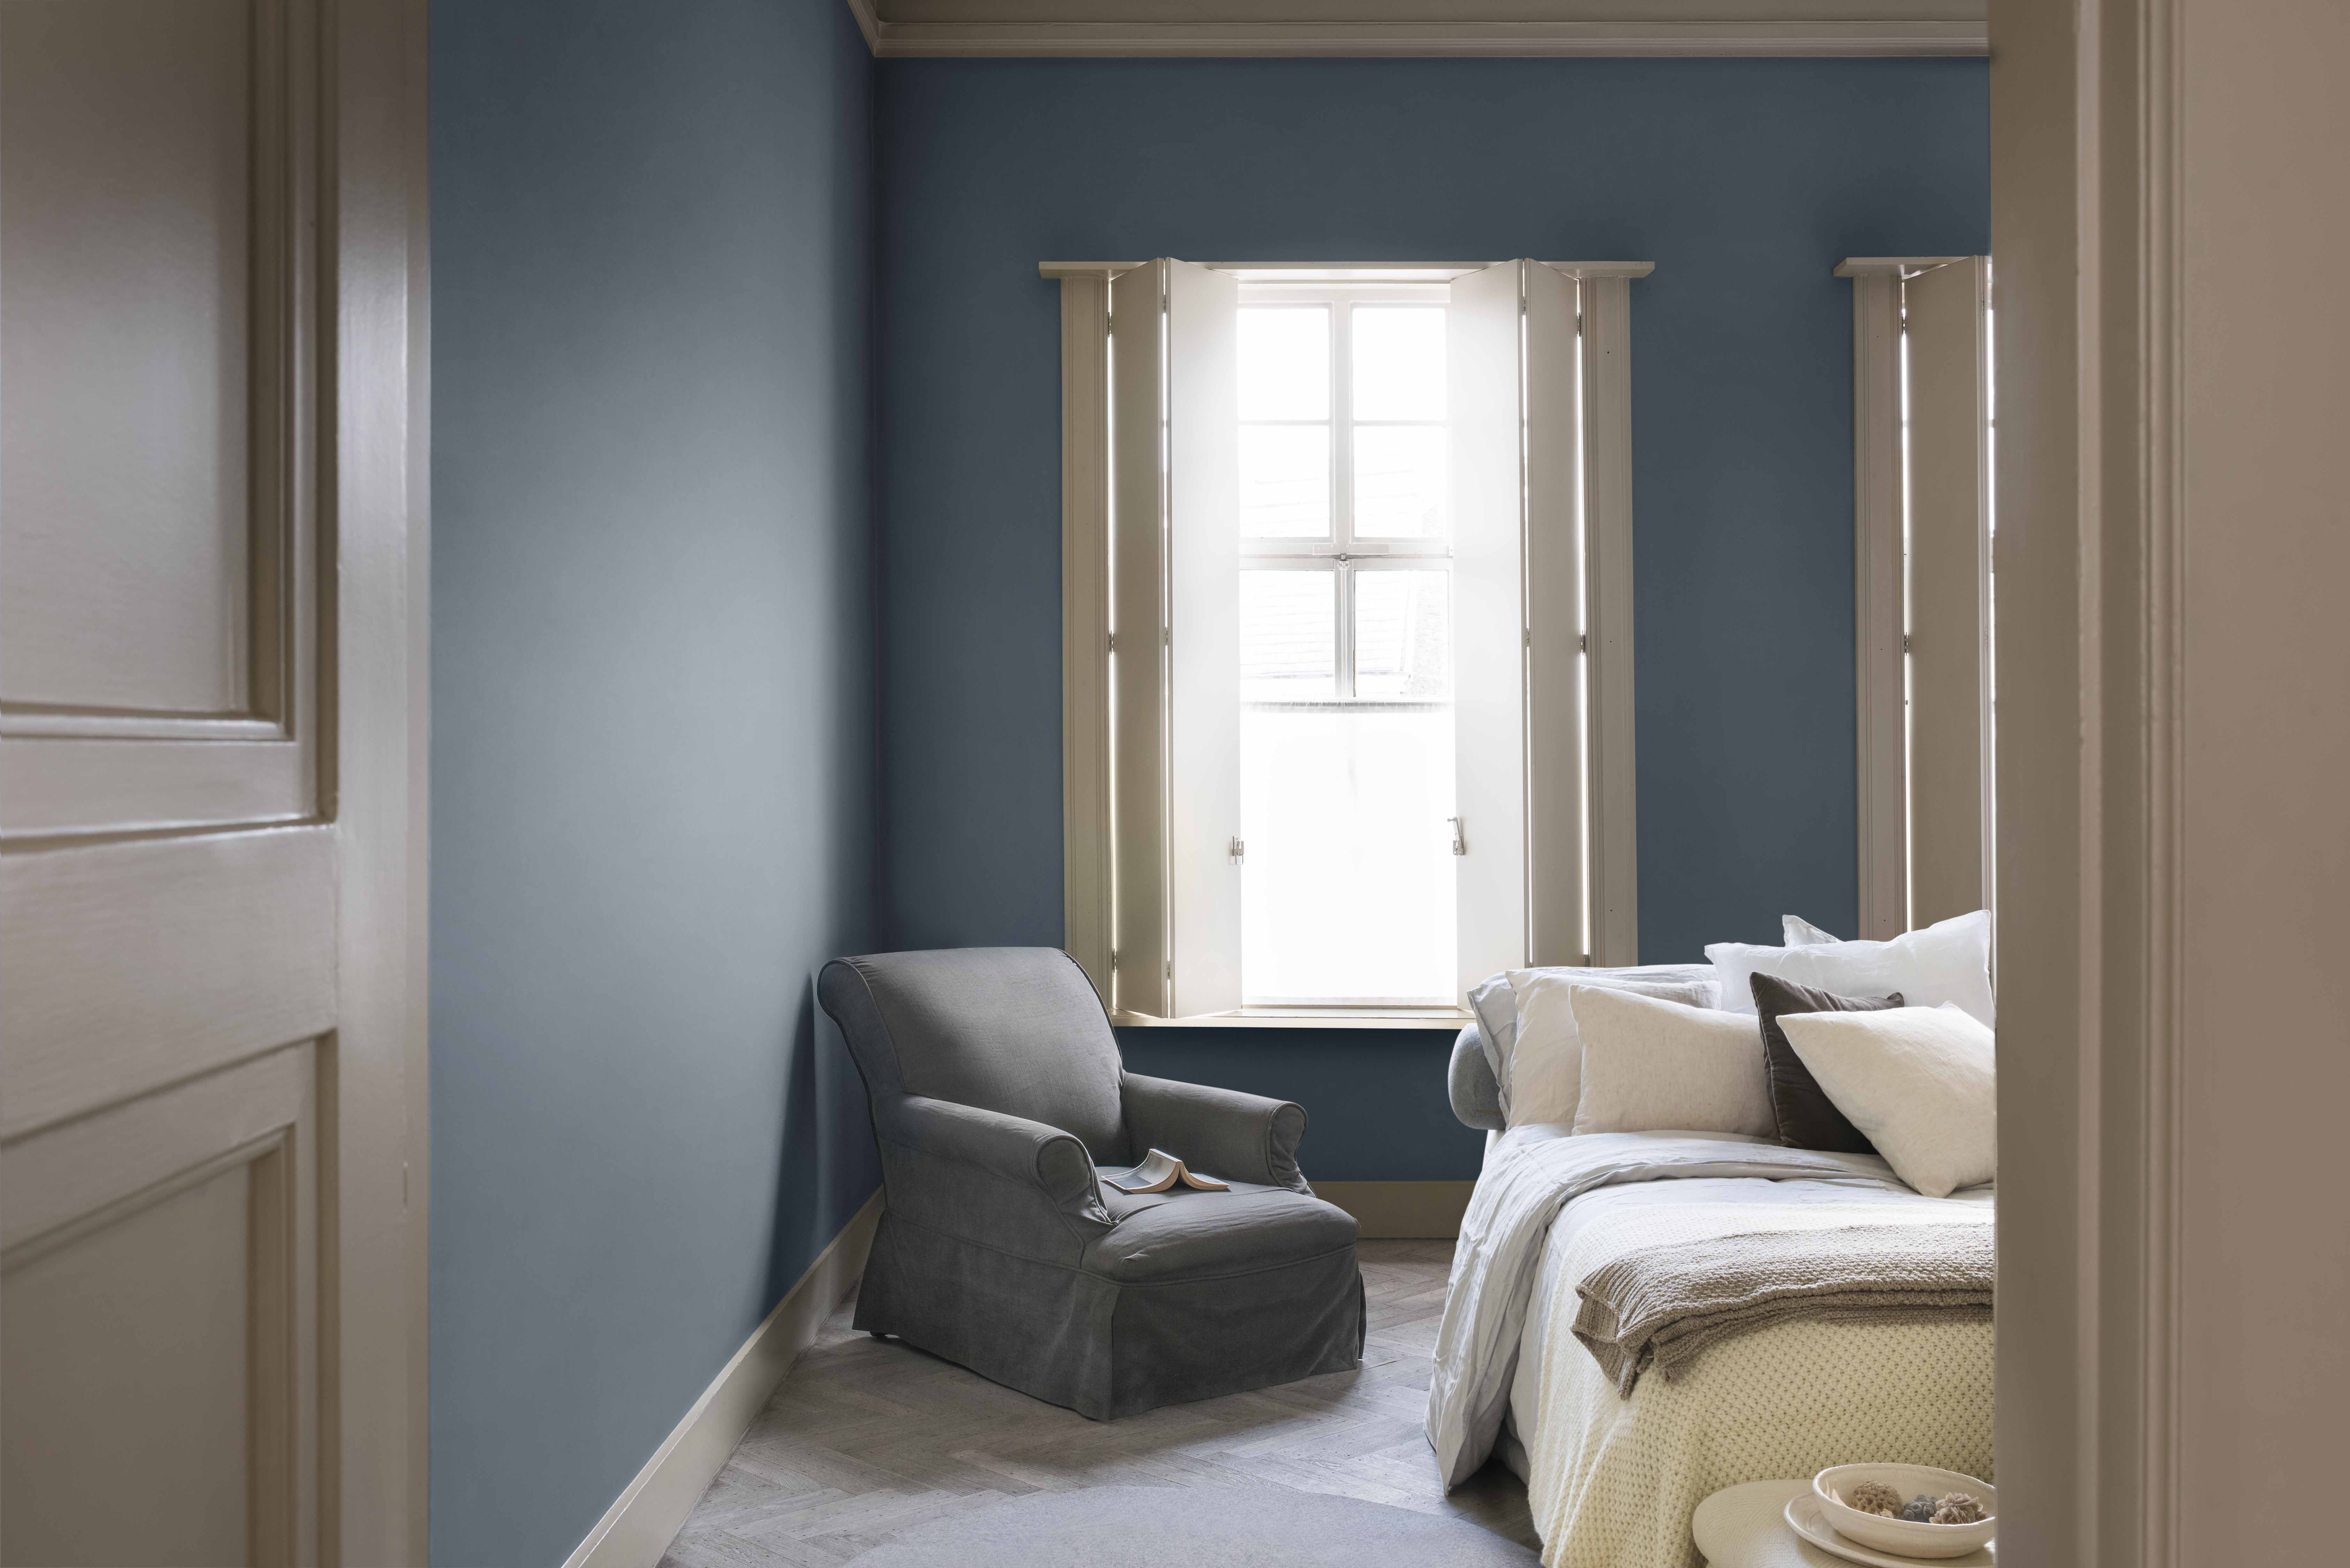 dulux-colour-futures-17-coty-bedroom-denim-drift